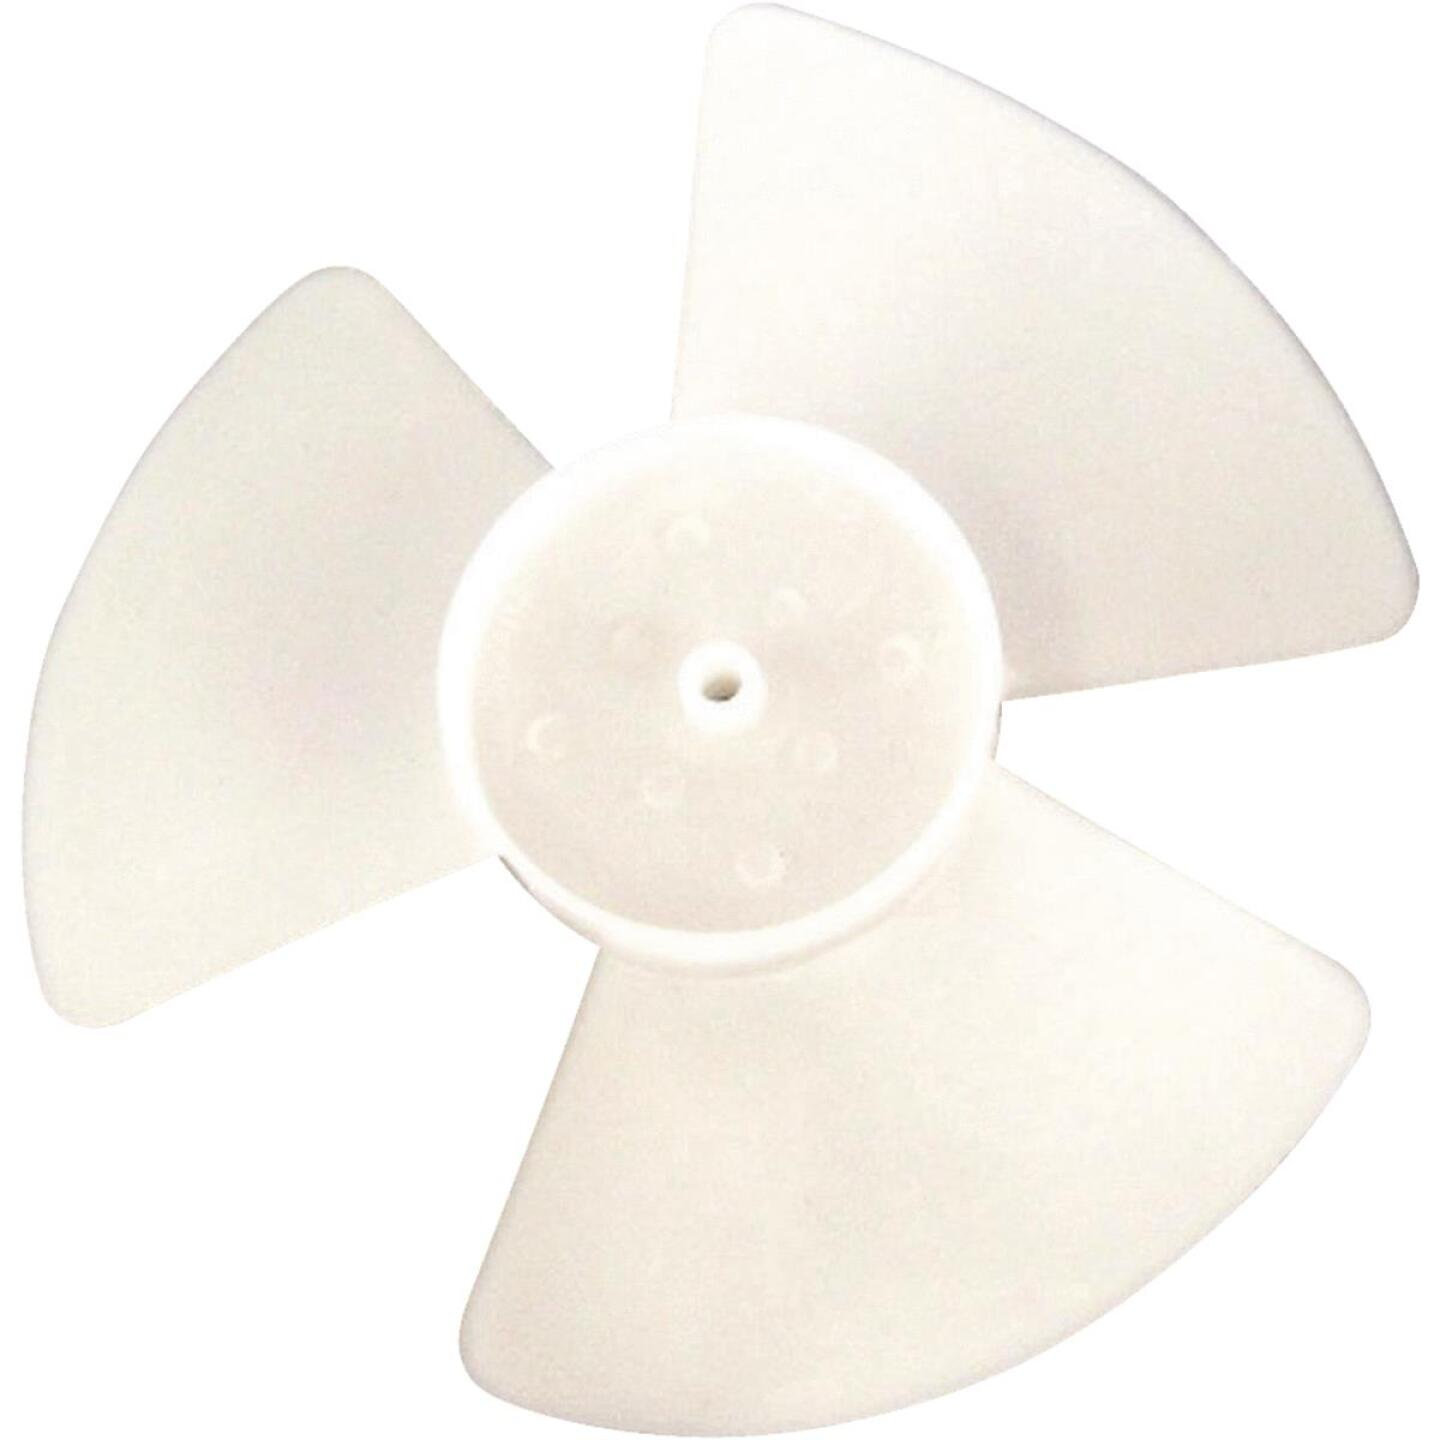 United States Hardware 6-1/2 In. Plastic Mobile Home Exhaust Fan Blade Image 1